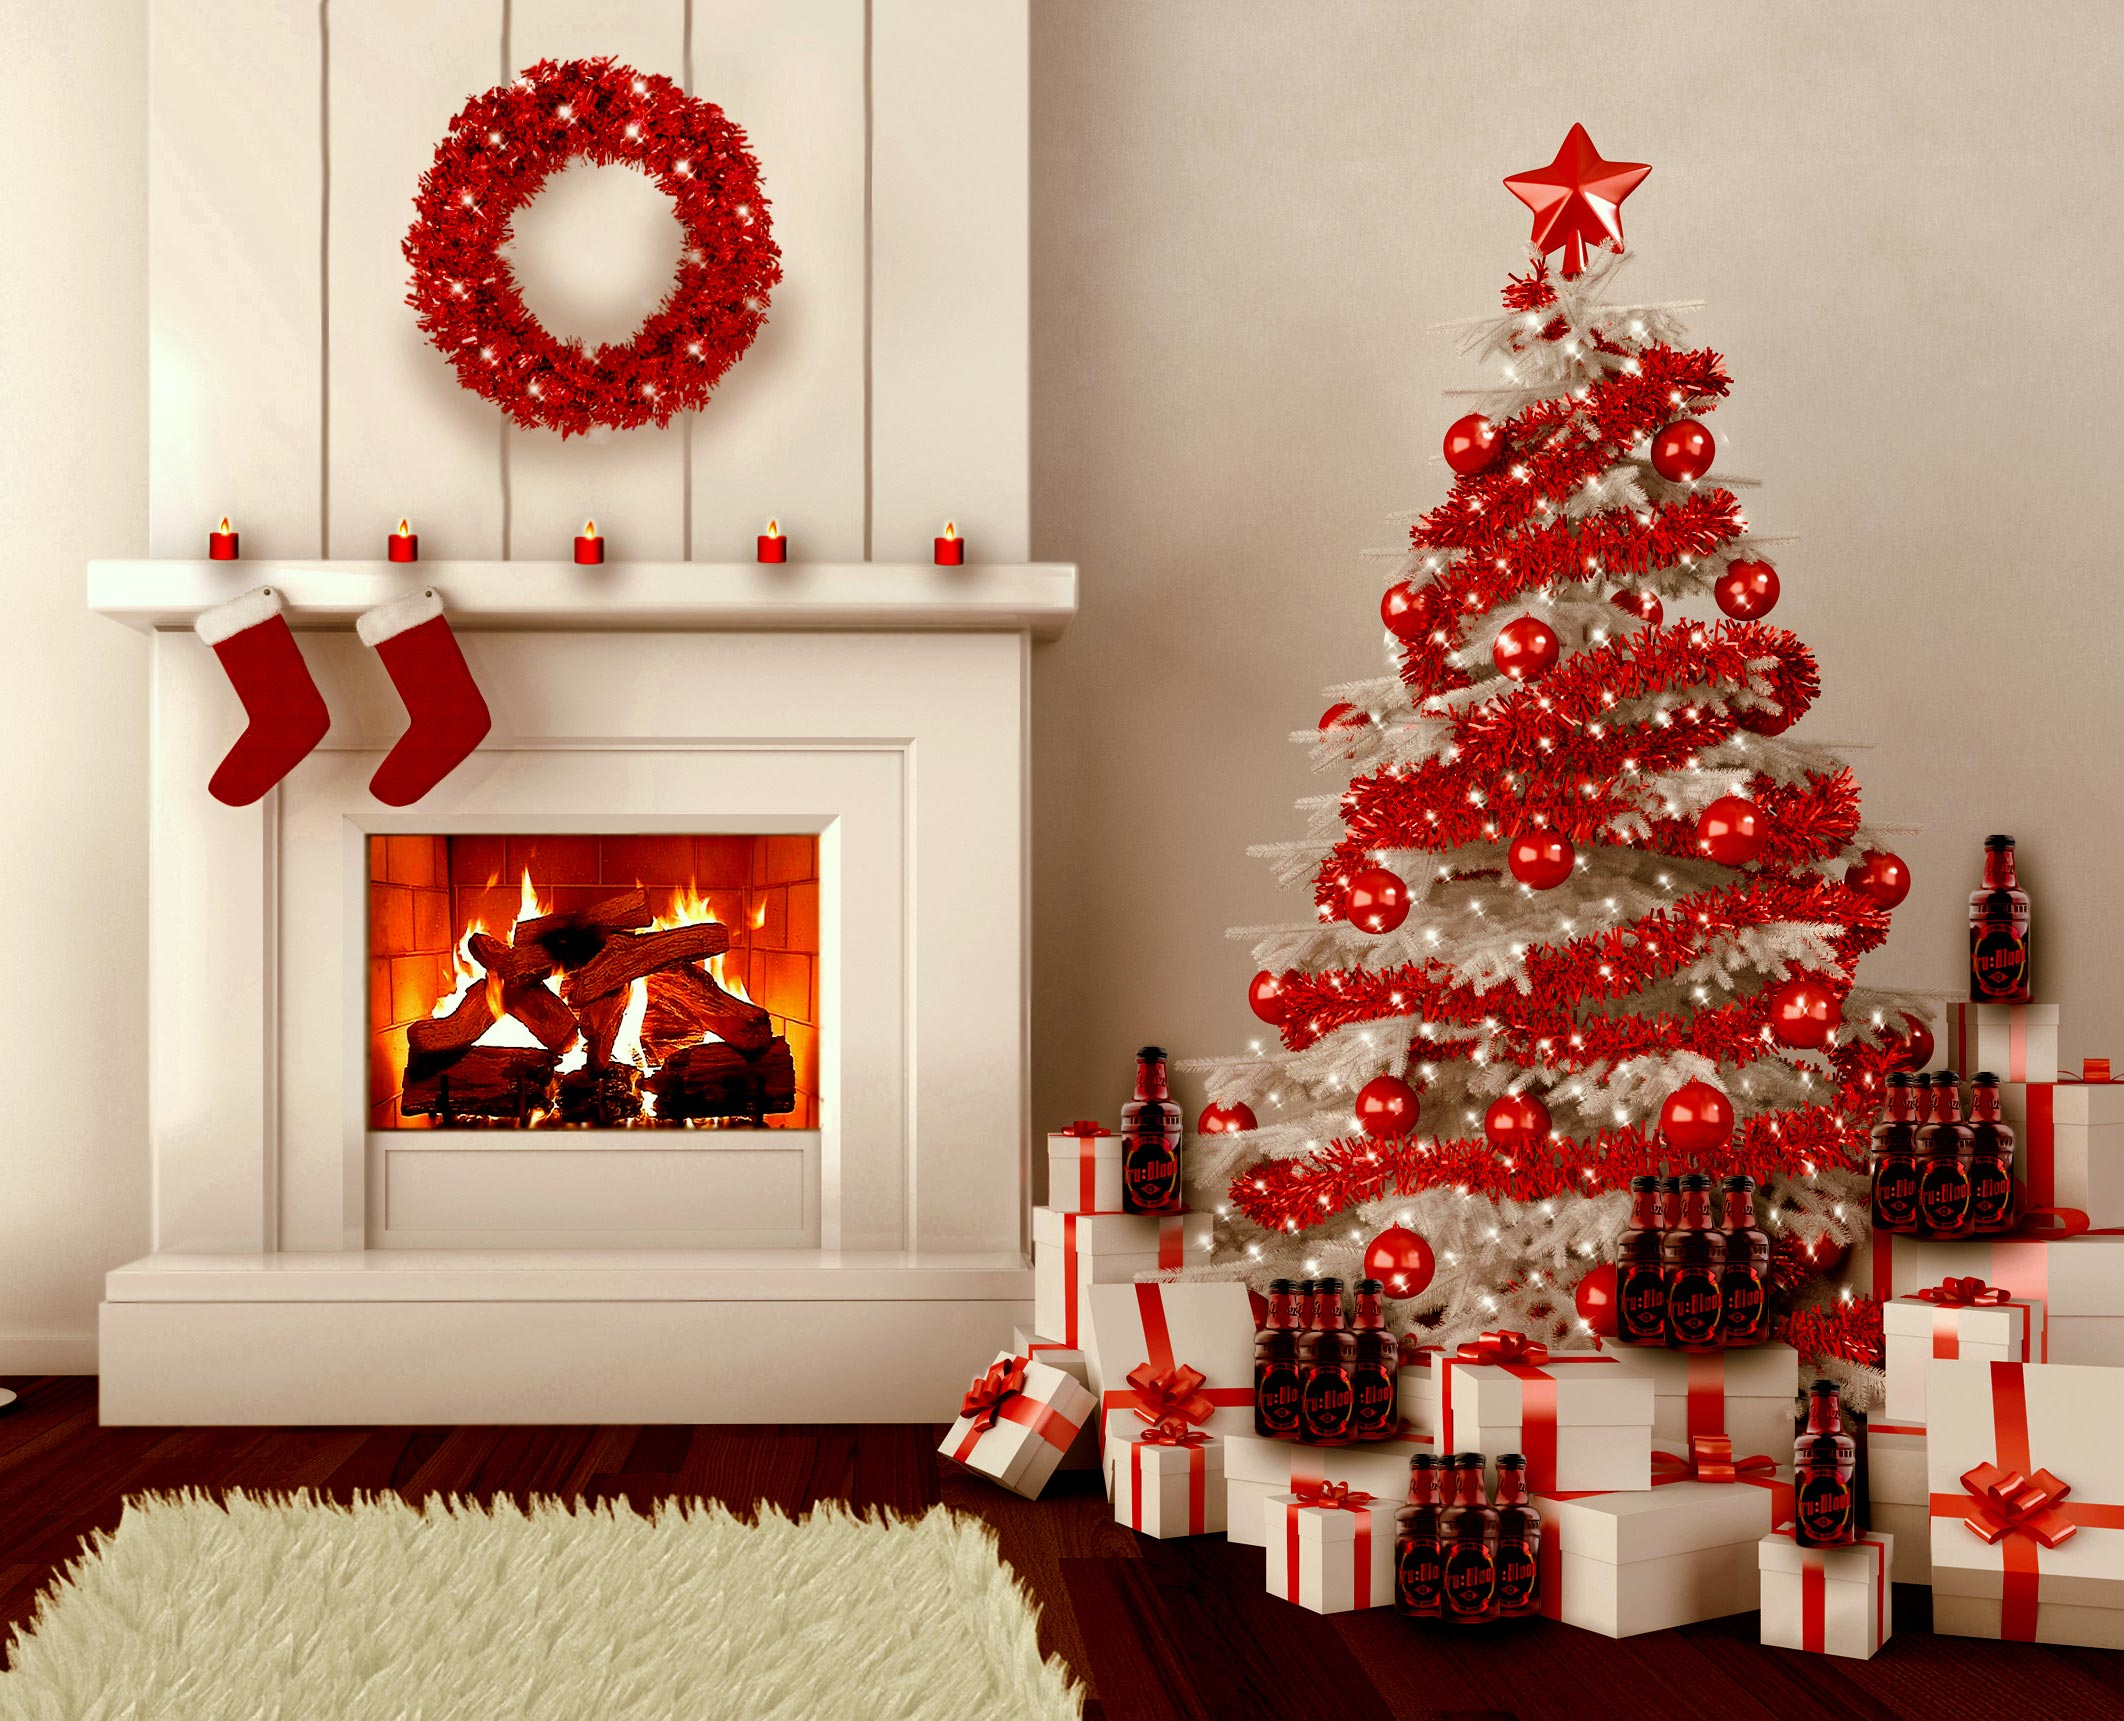 red christmas tree decorations ideas - Christmas Decoration Ideas 2016